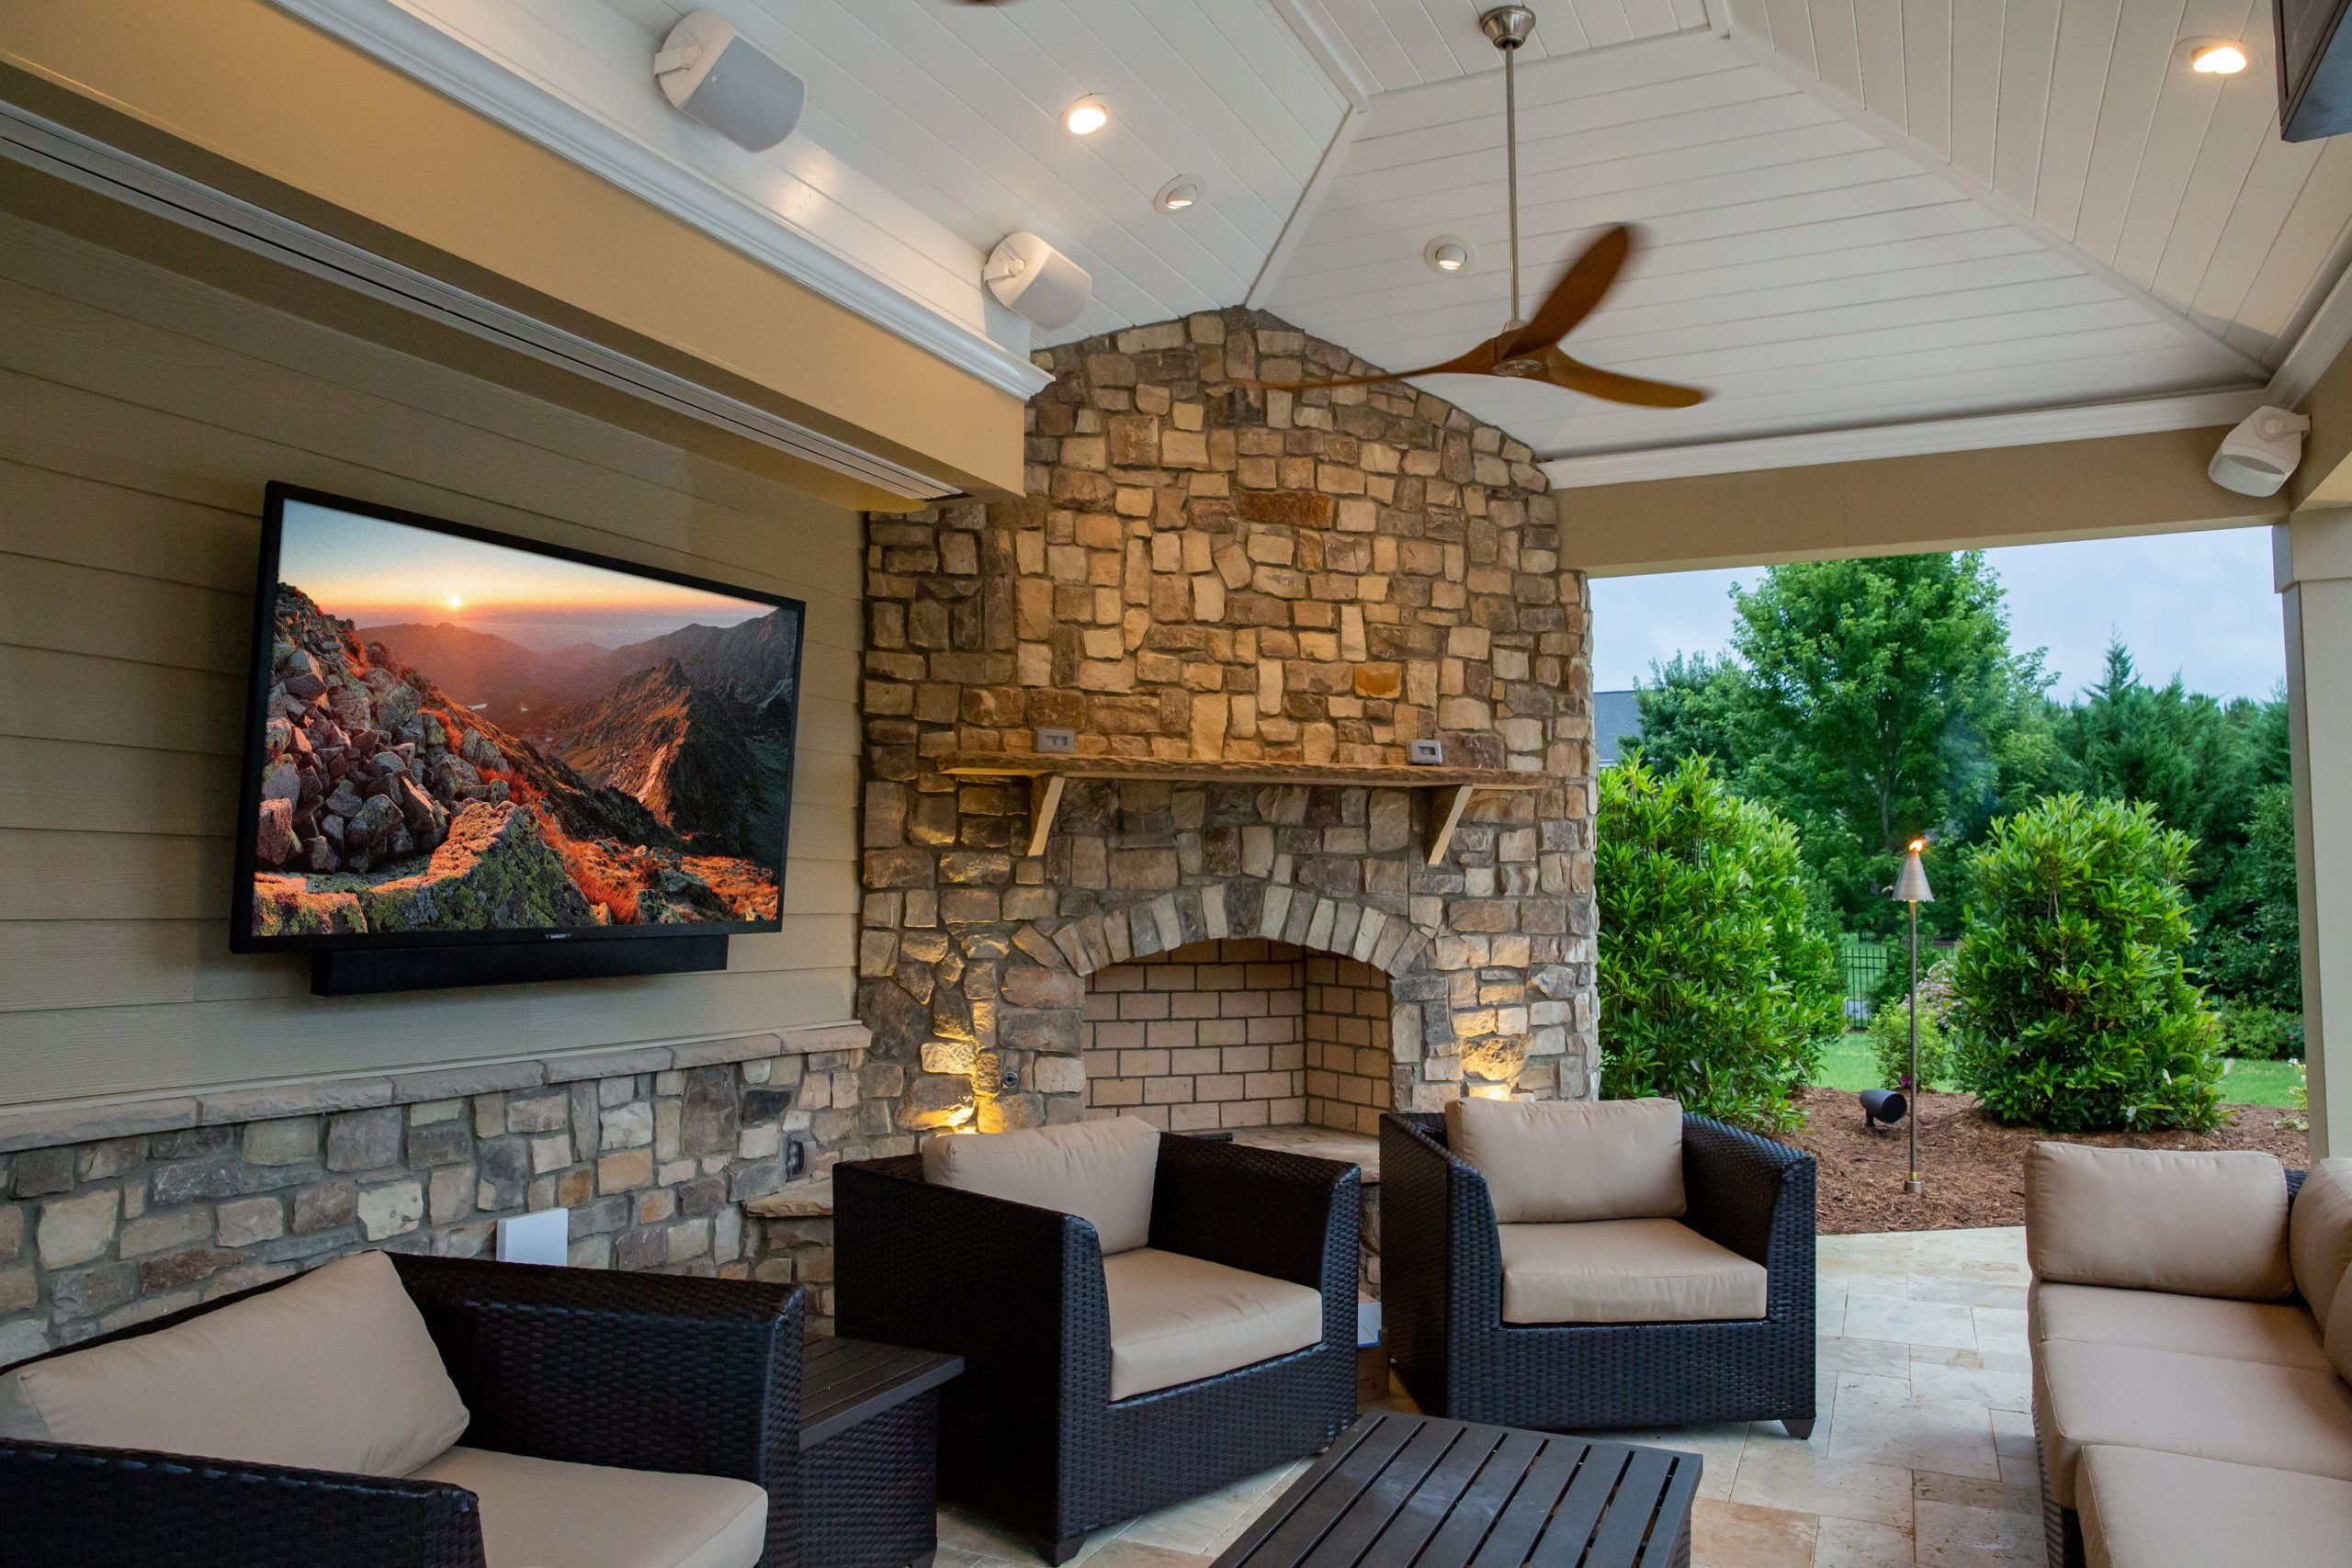 Outdoor entertaining area with home cinema